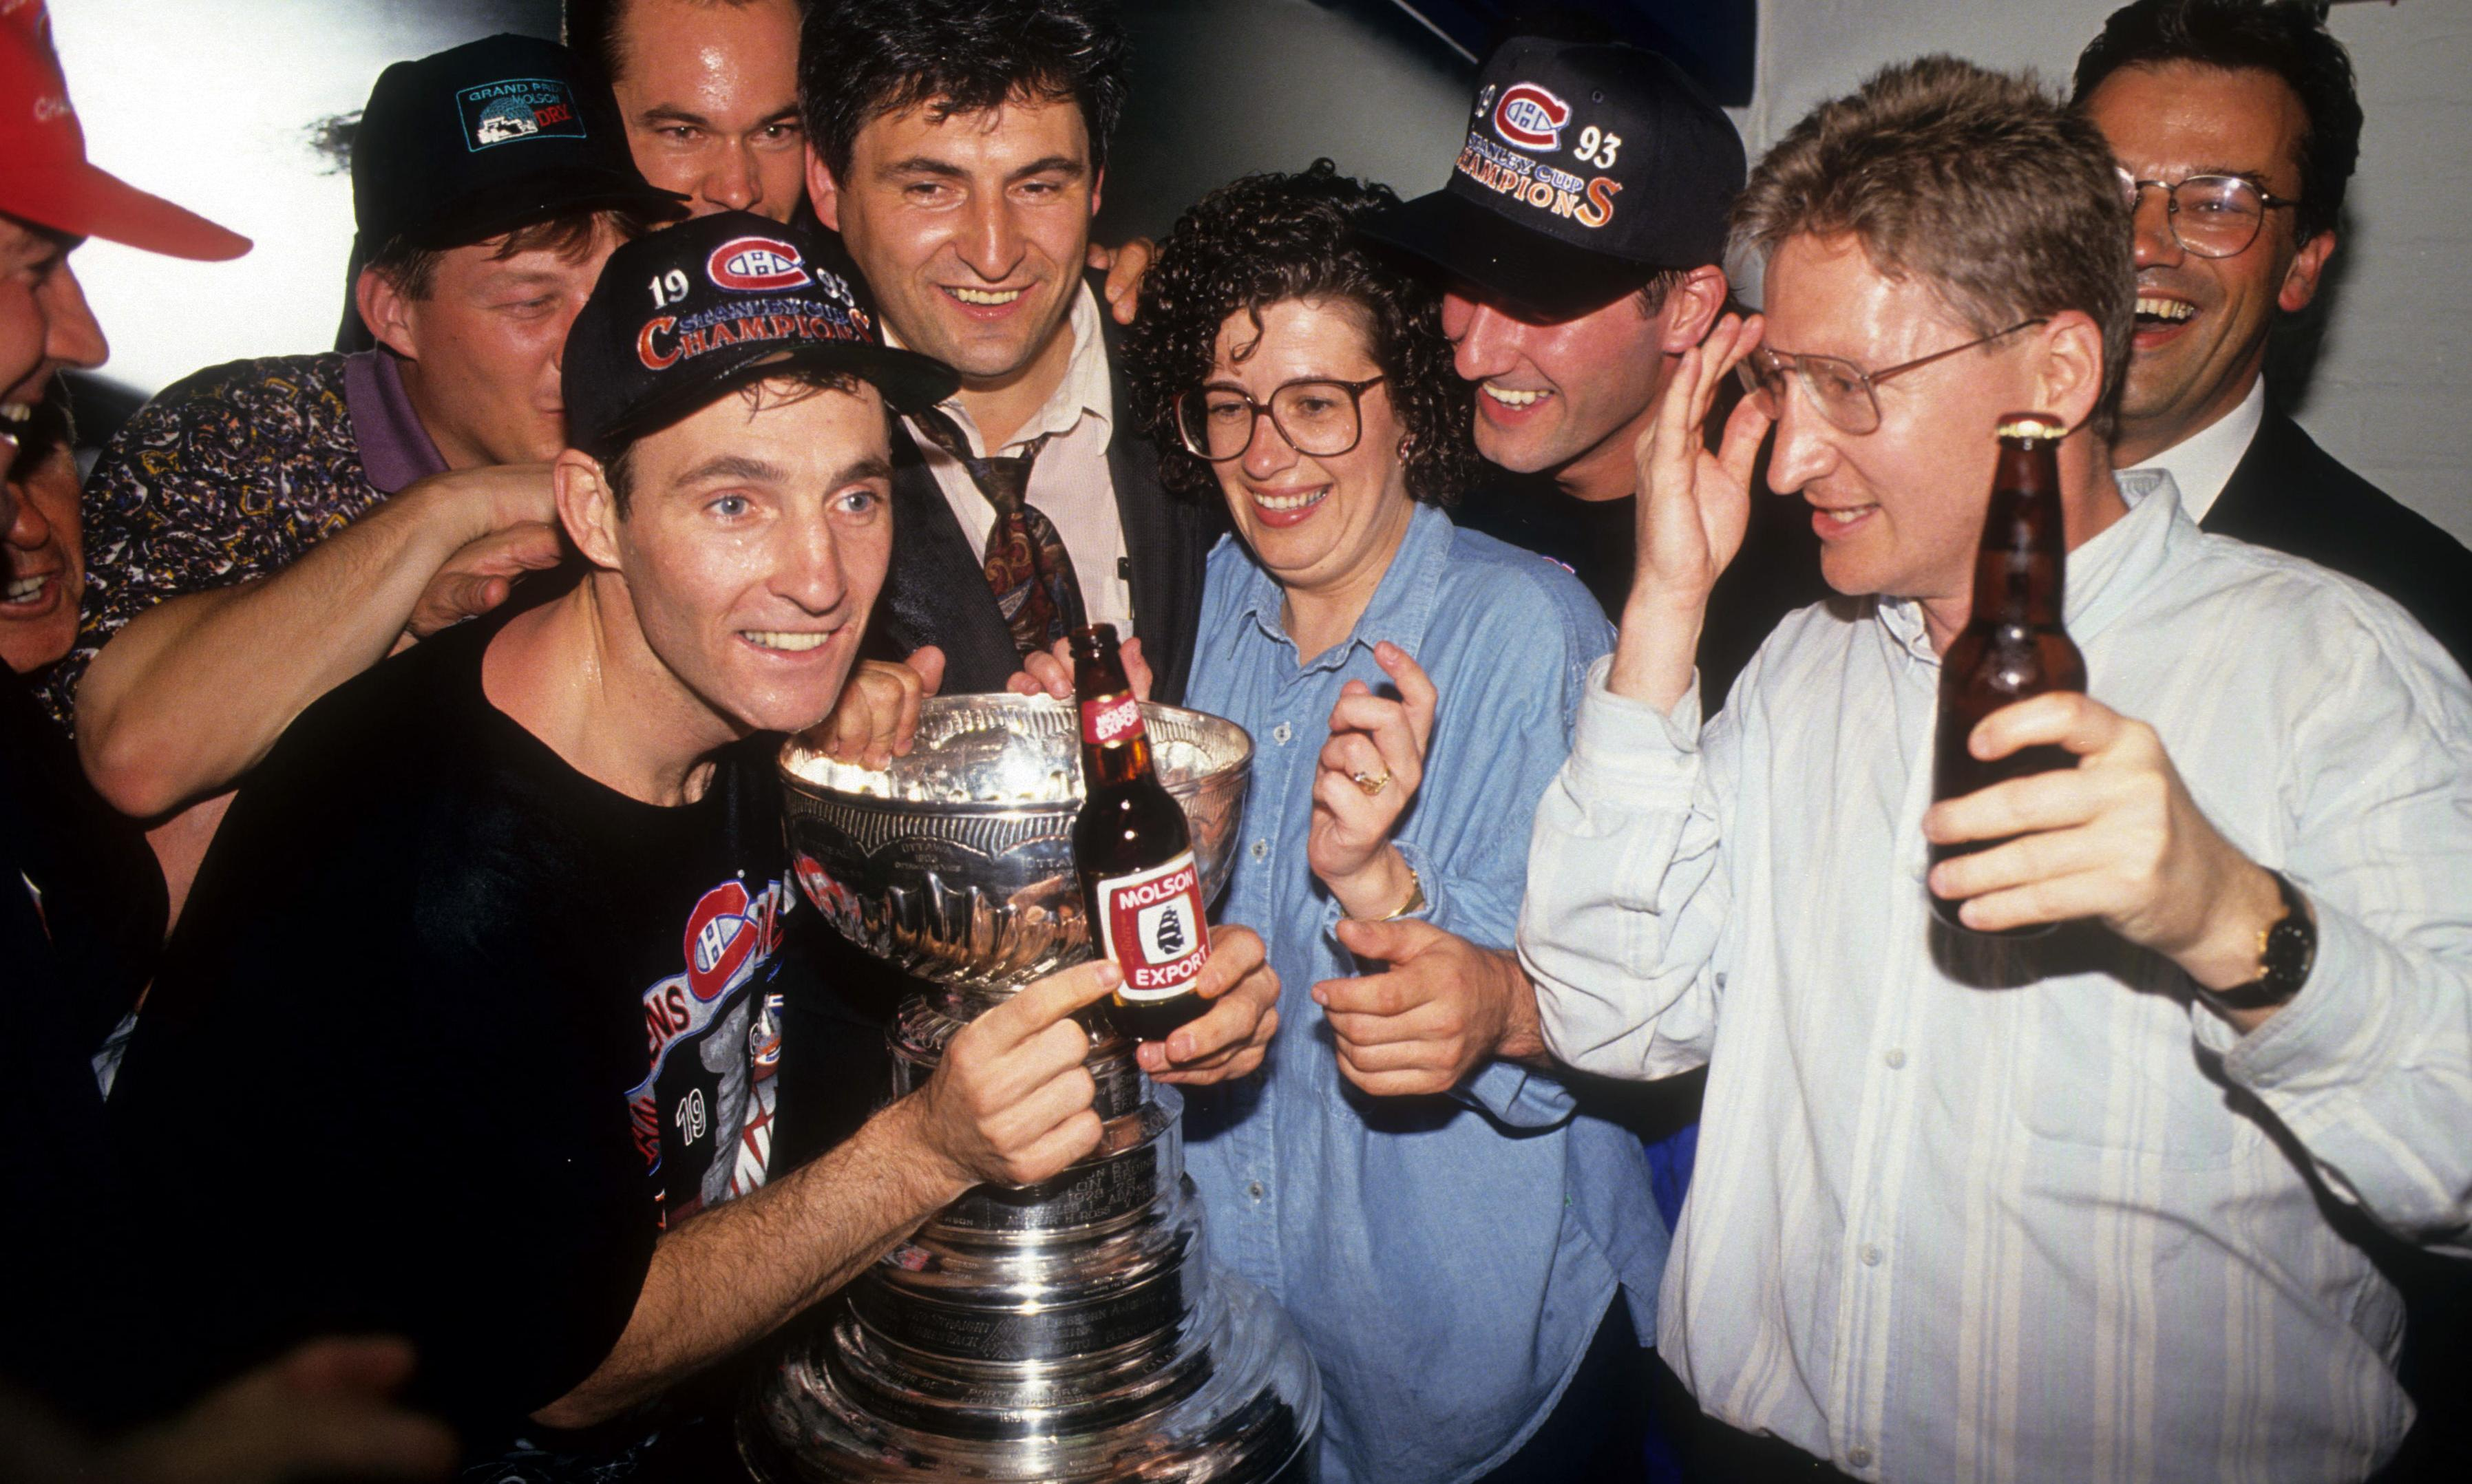 'No dynasty lasts forever': the long, slow decline of the Montreal Canadiens